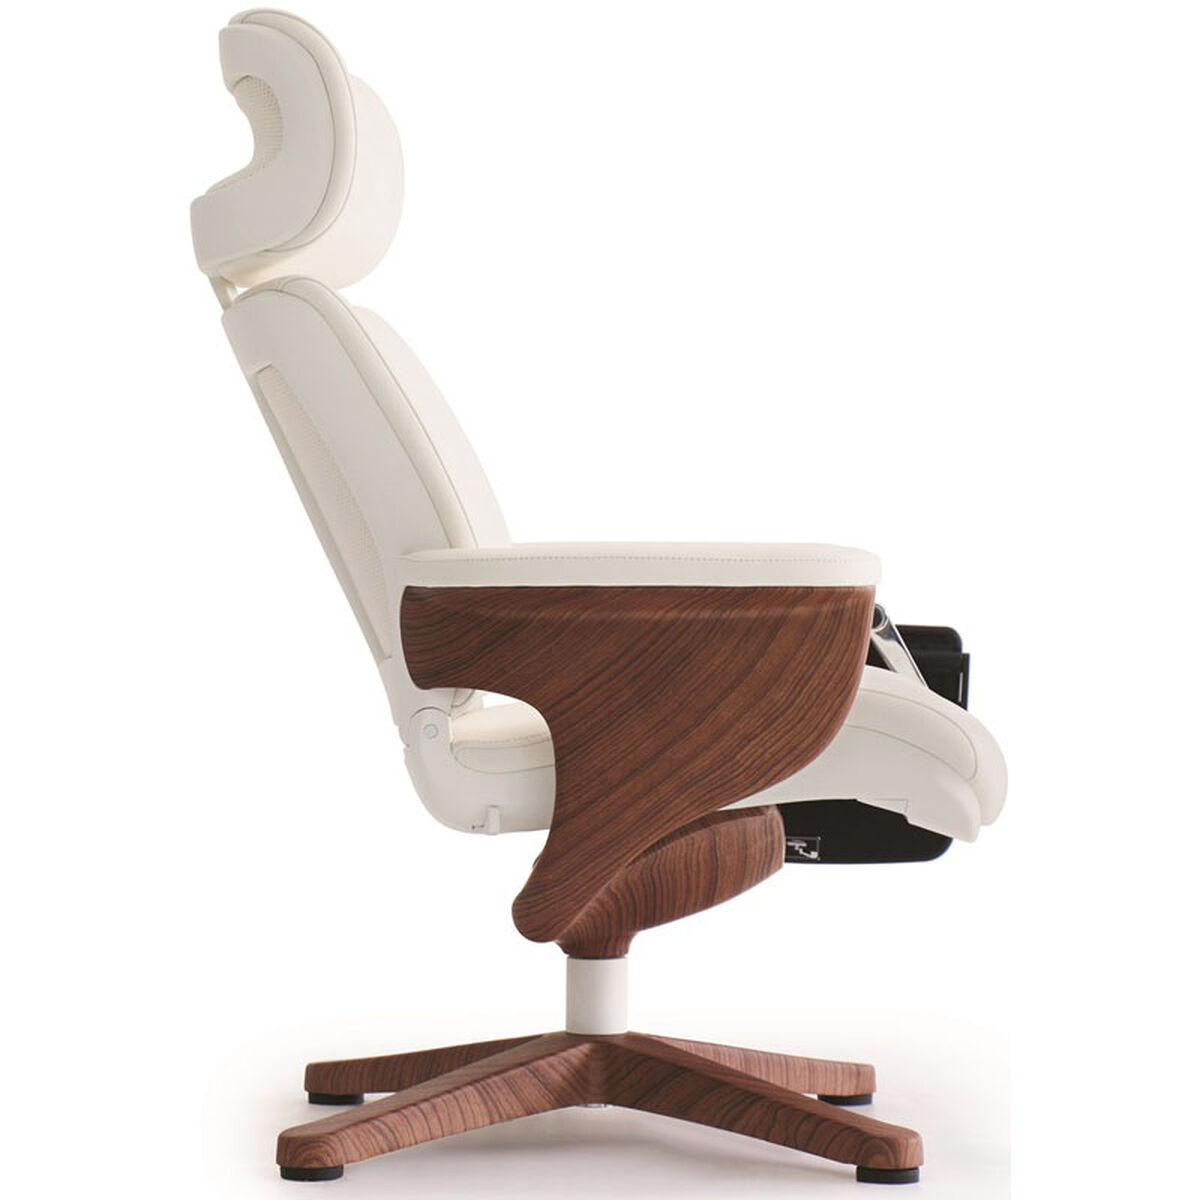 Our Nuvem Leather Office Chair With Footrest And Built In Laptop Holder White Teak